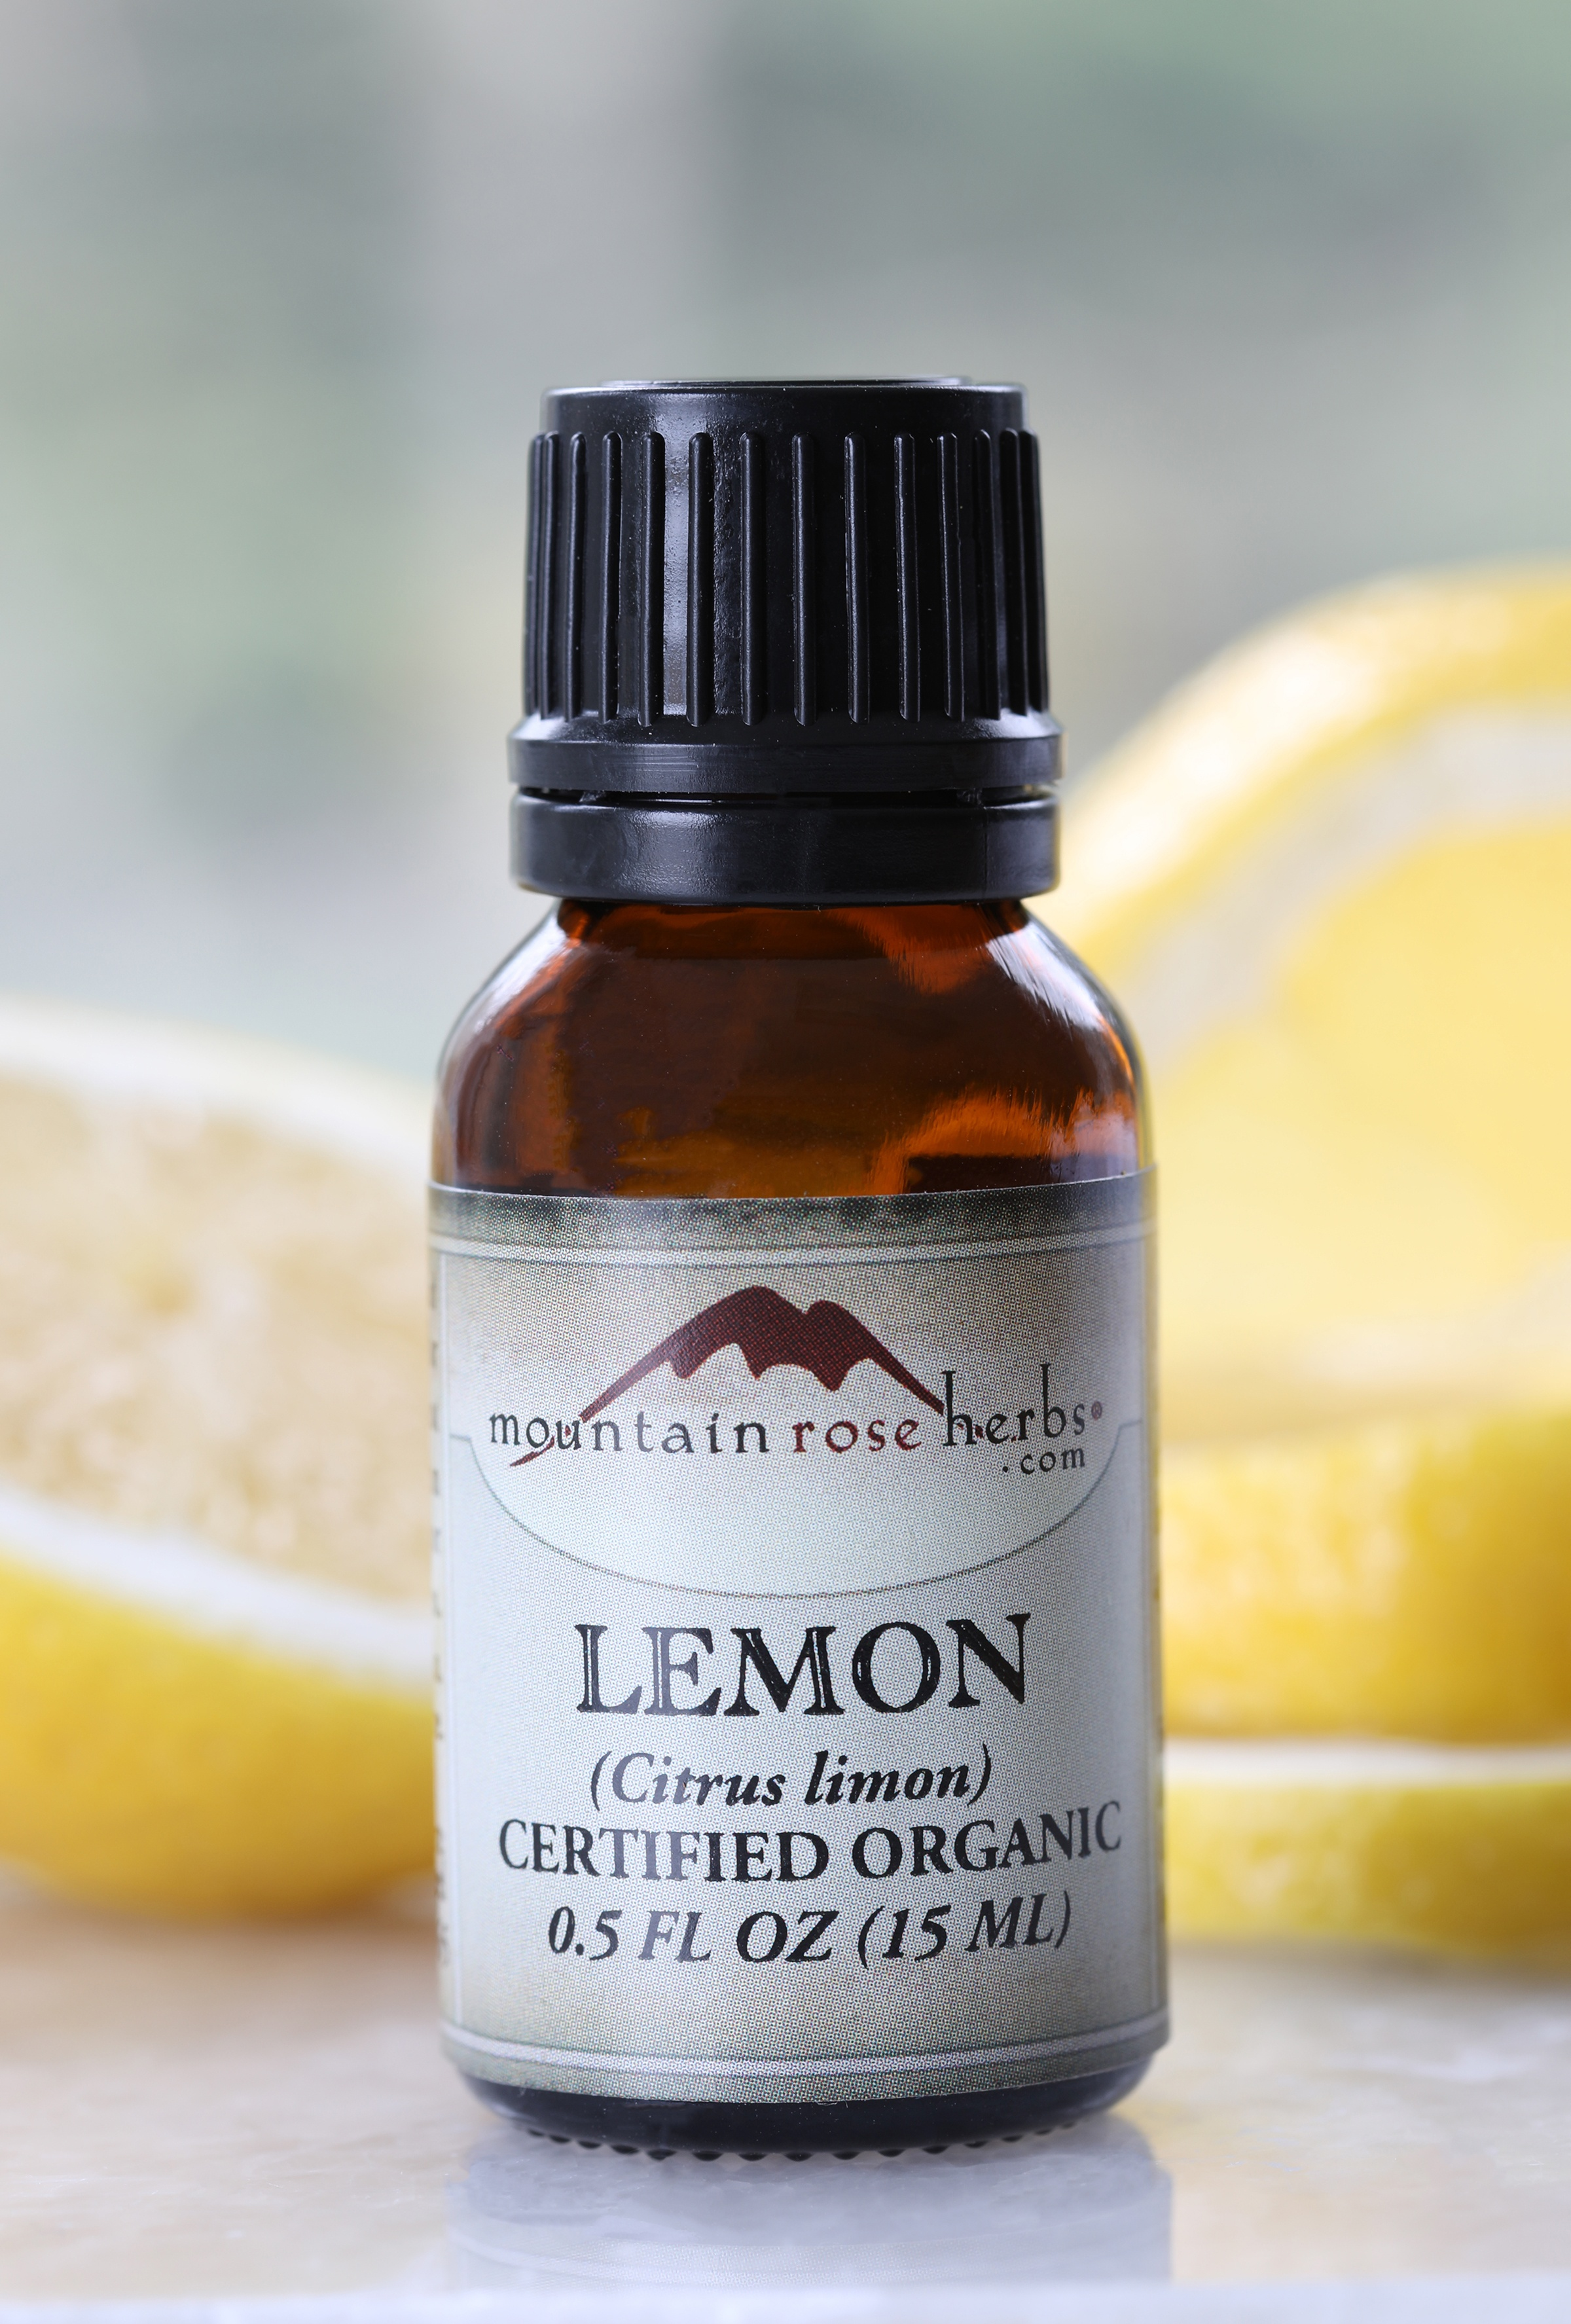 Half ounce glass amber bottle of lemon essential oil for spring cleaning